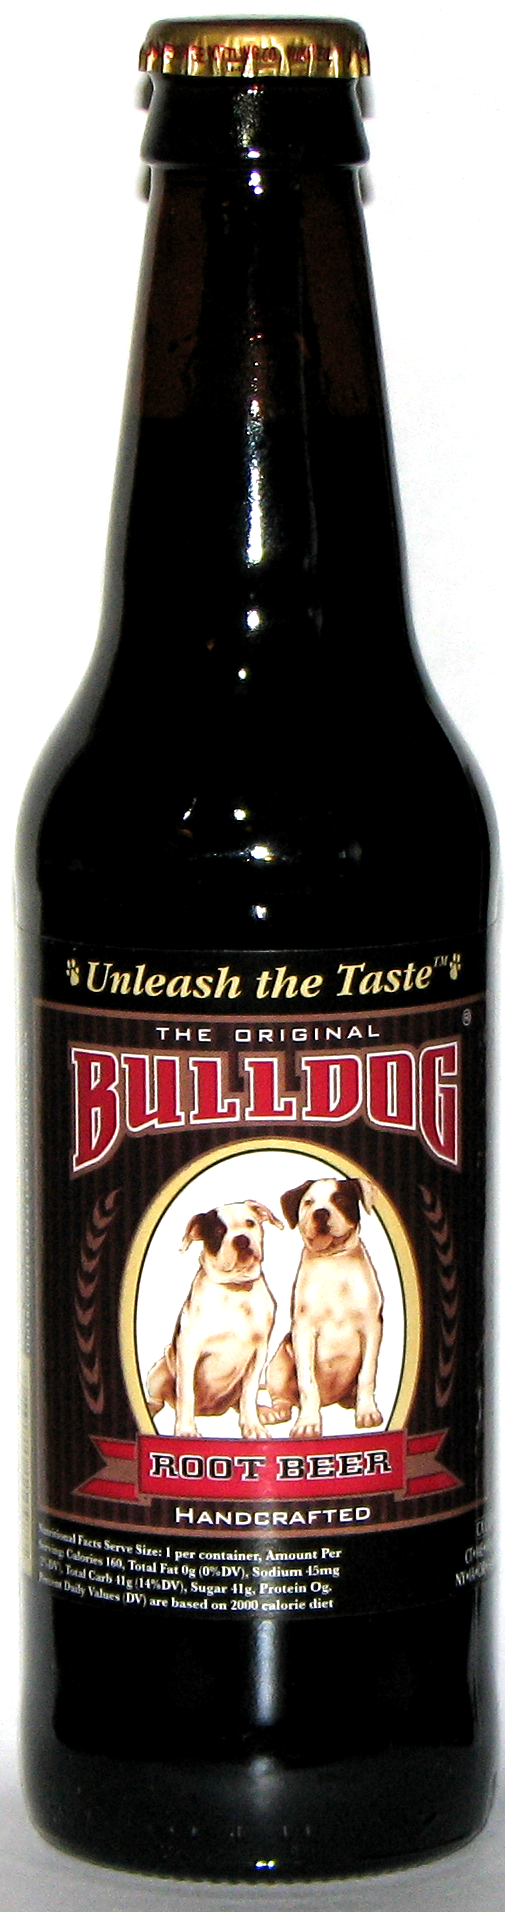 Bulldog Root Beer. Orca Beverages, Mukilteo, WA. Comments